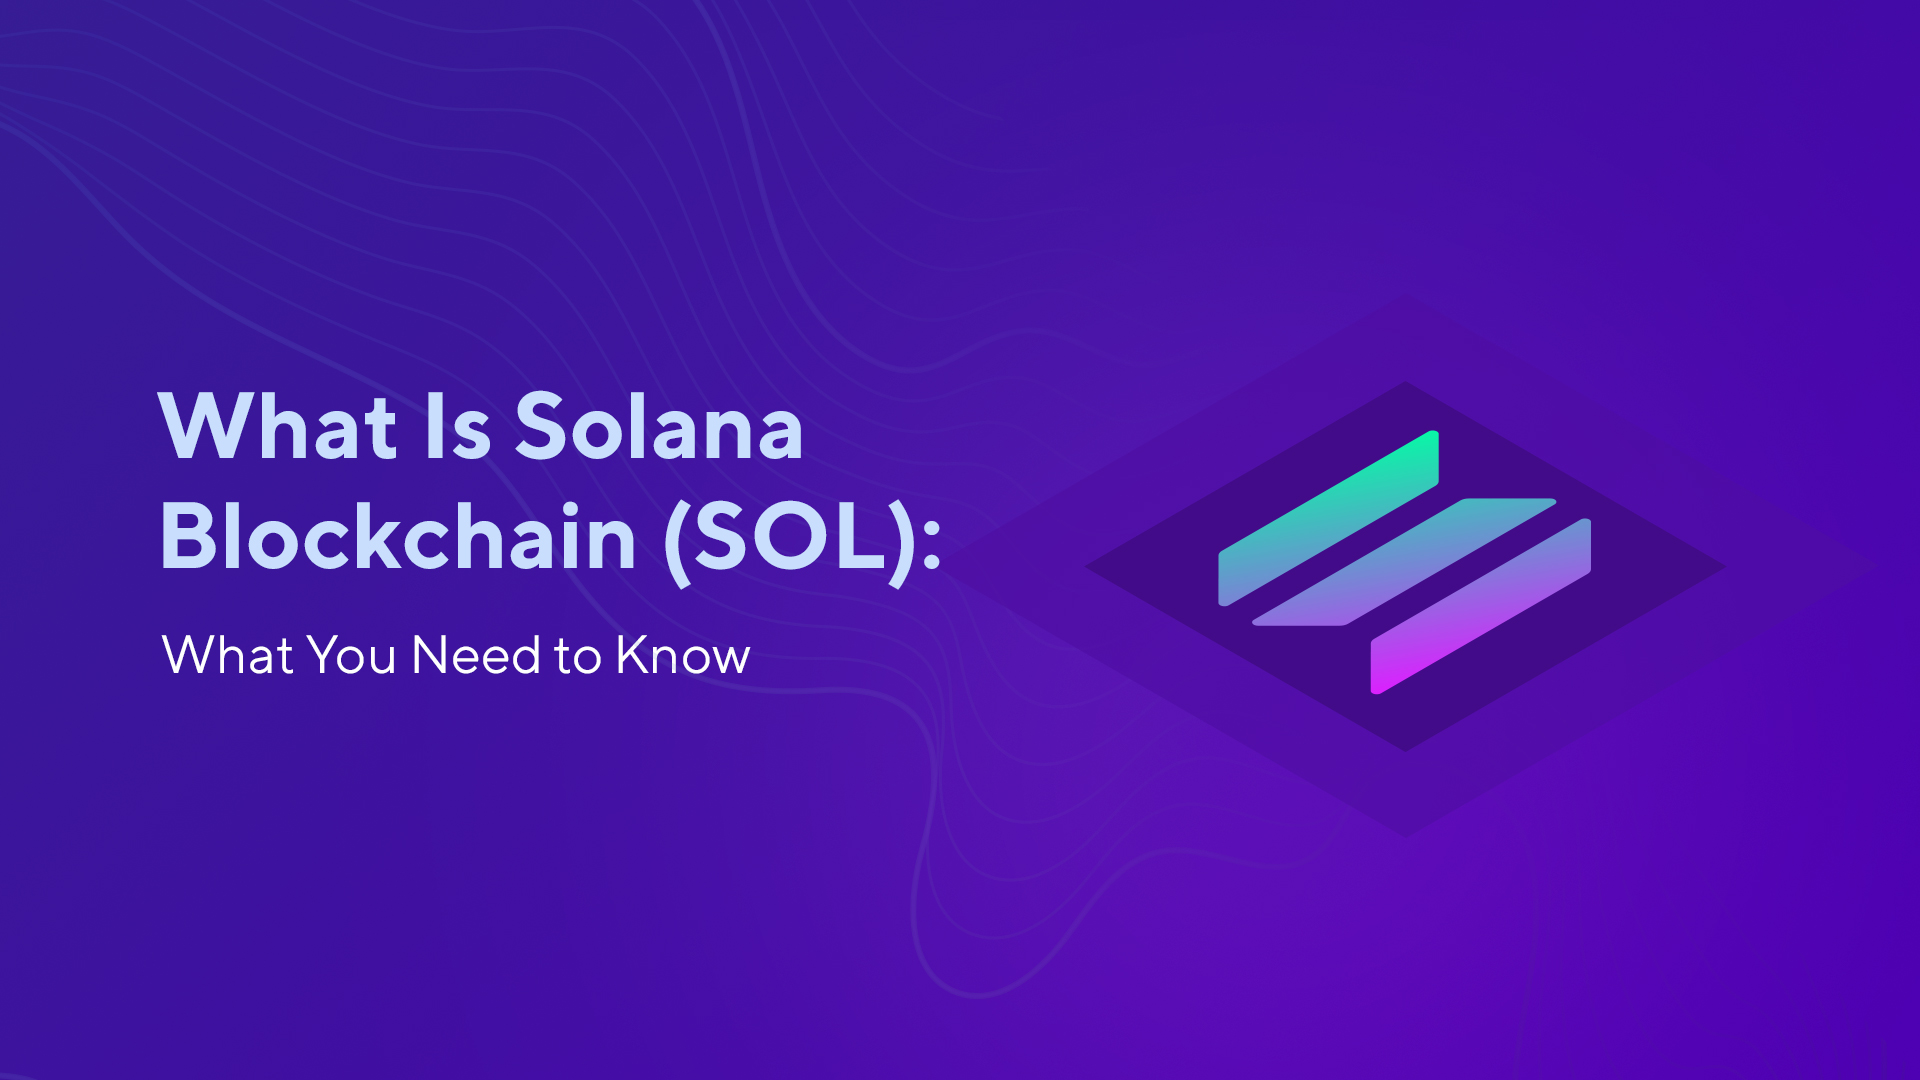 What Is Solana Blockchain (SOL): What You Need to Know